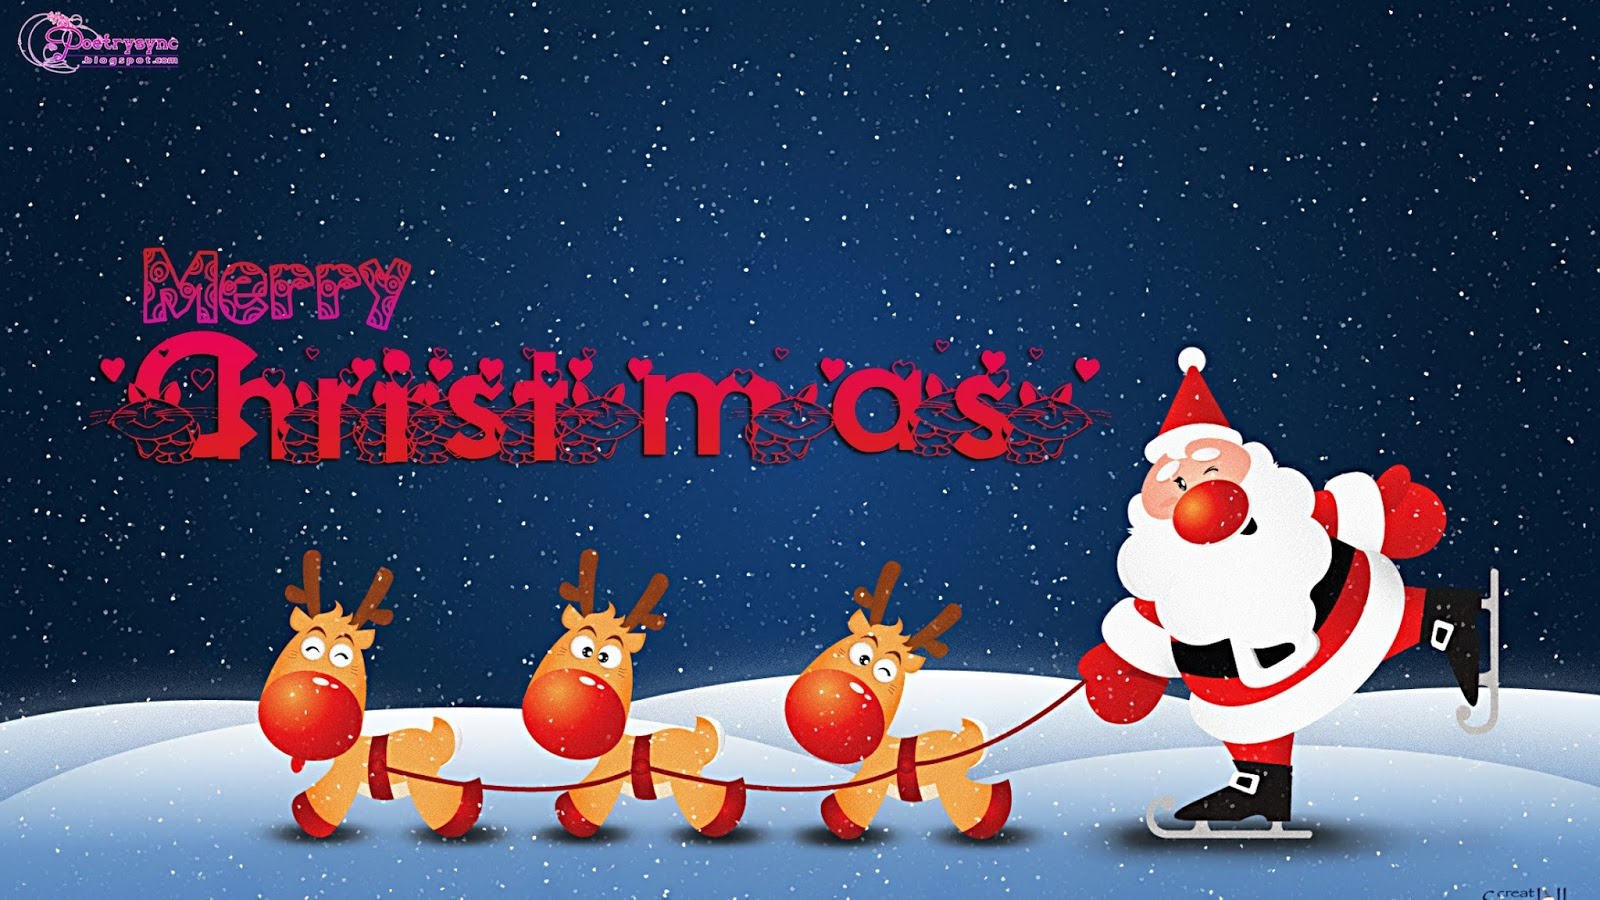 Cute Merry Christmas Wallpaper Wallpapersafari Animated Images Pictures Becuo Animation